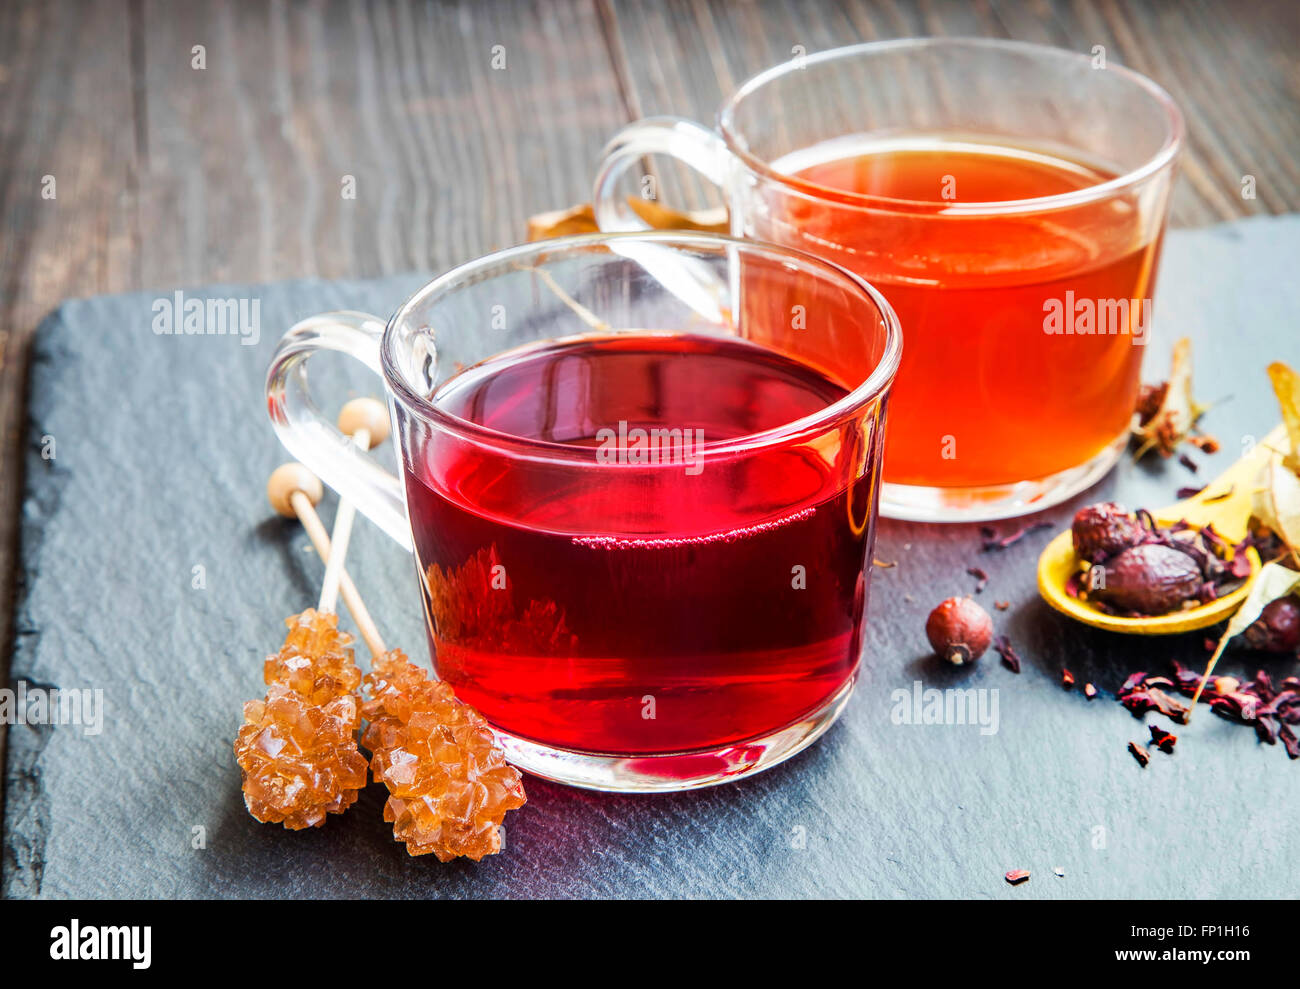 Red berries tea in transparent cups with brown sugar rock candy and dried flowers and fruits - Stock Image